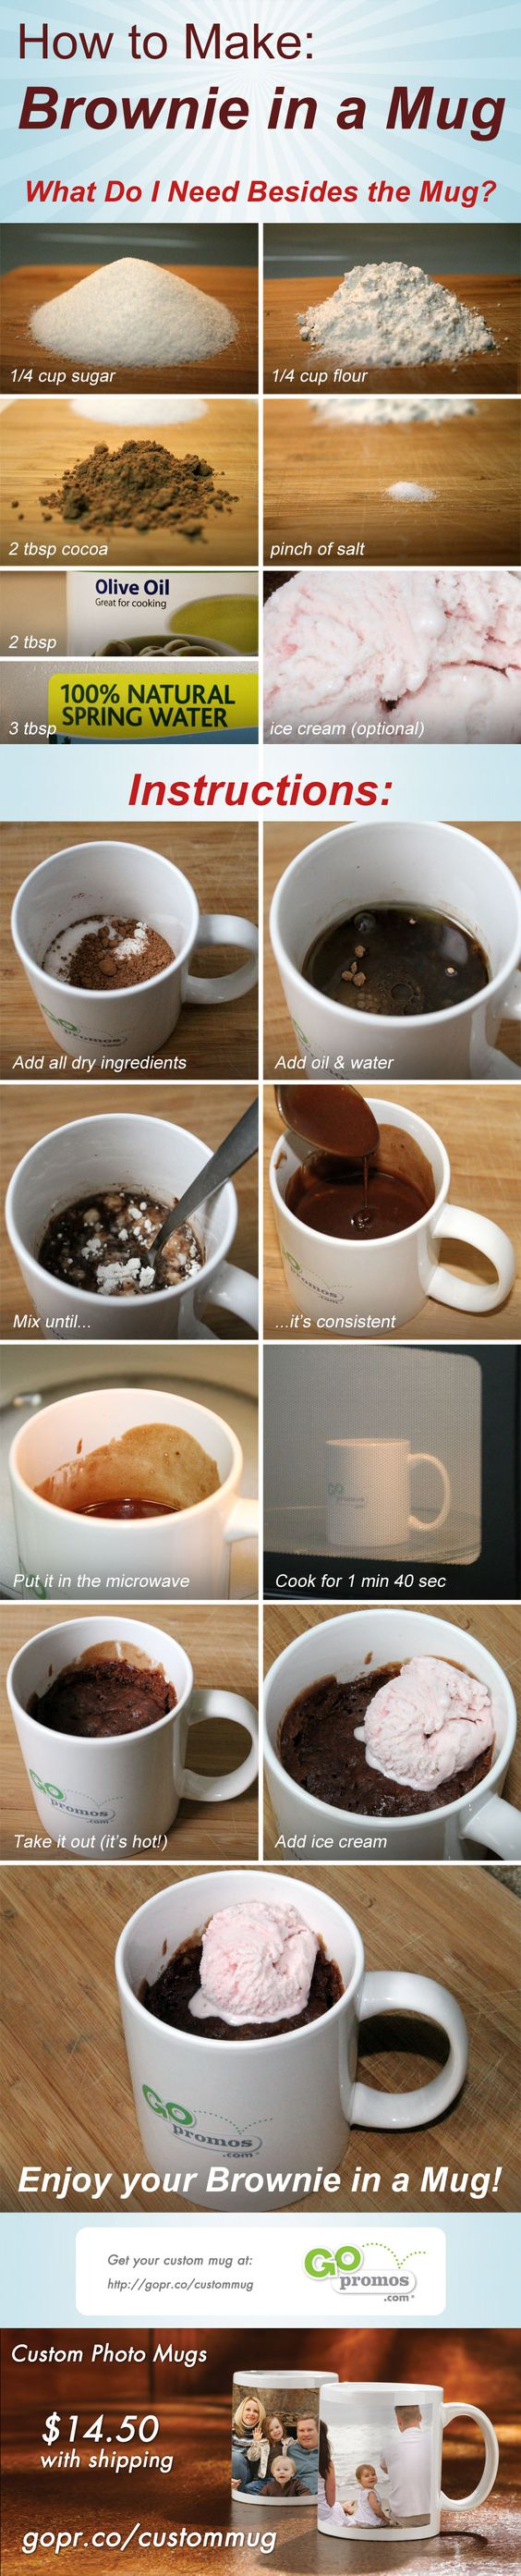 How to Make Brownie in a Mug